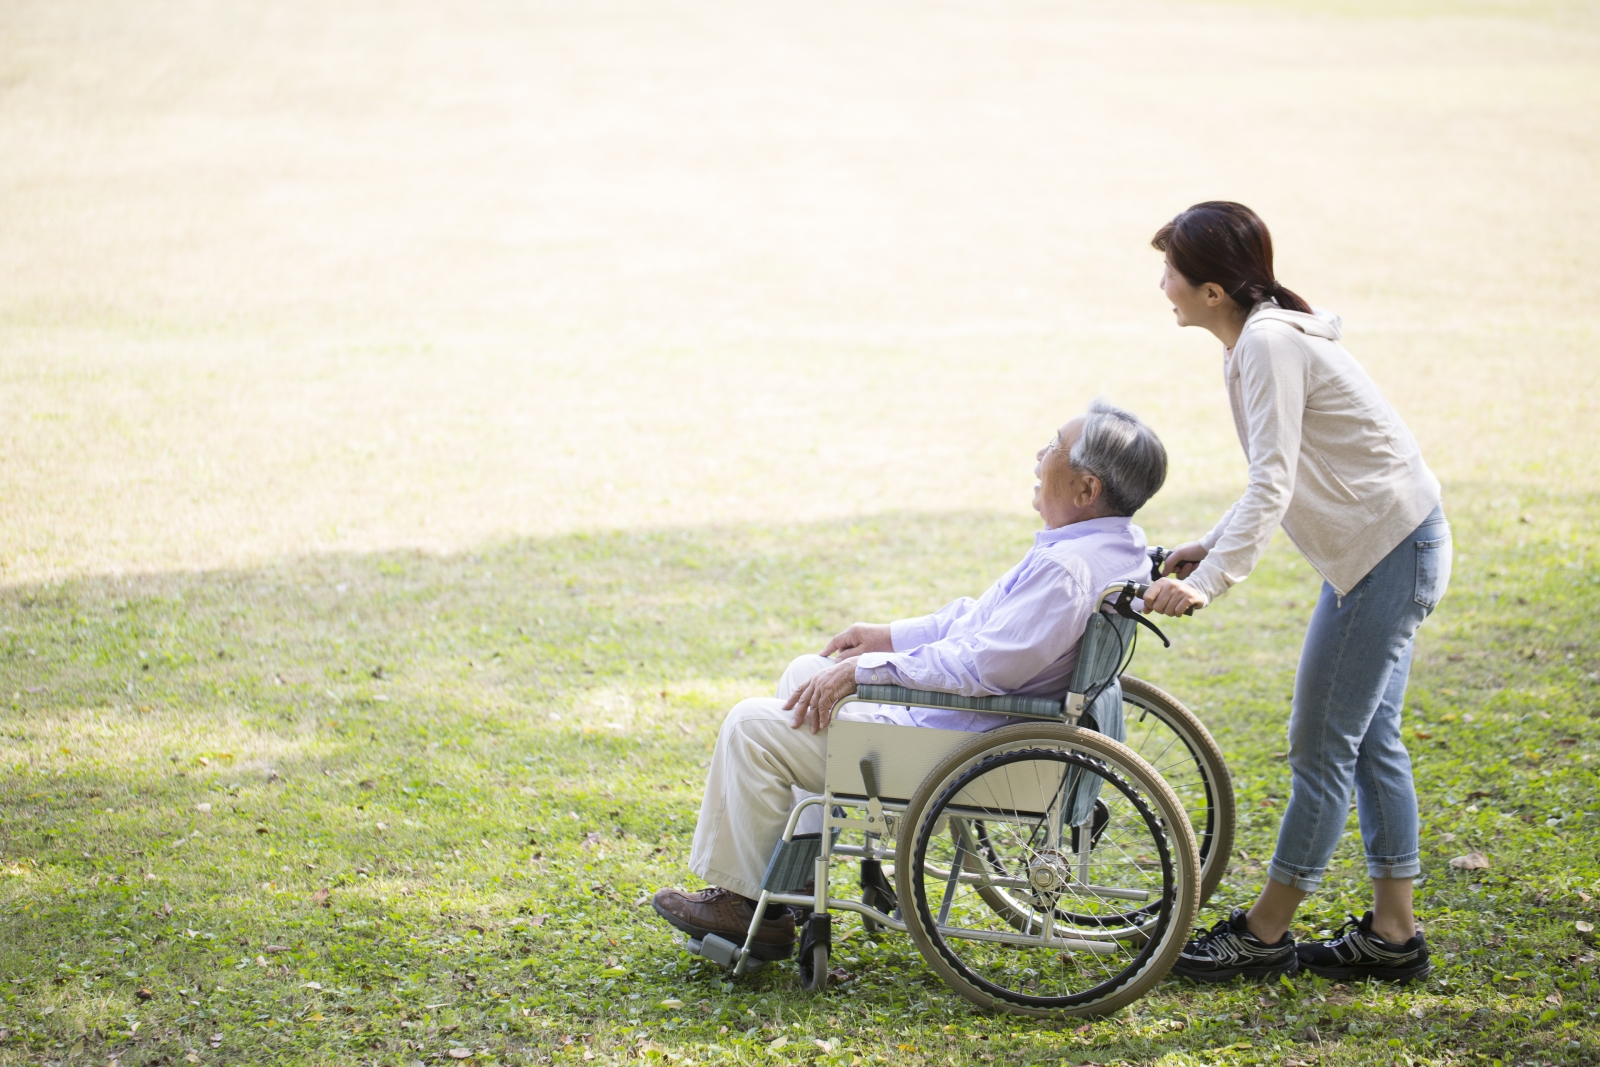 senior living, aging wisely, health and wellness